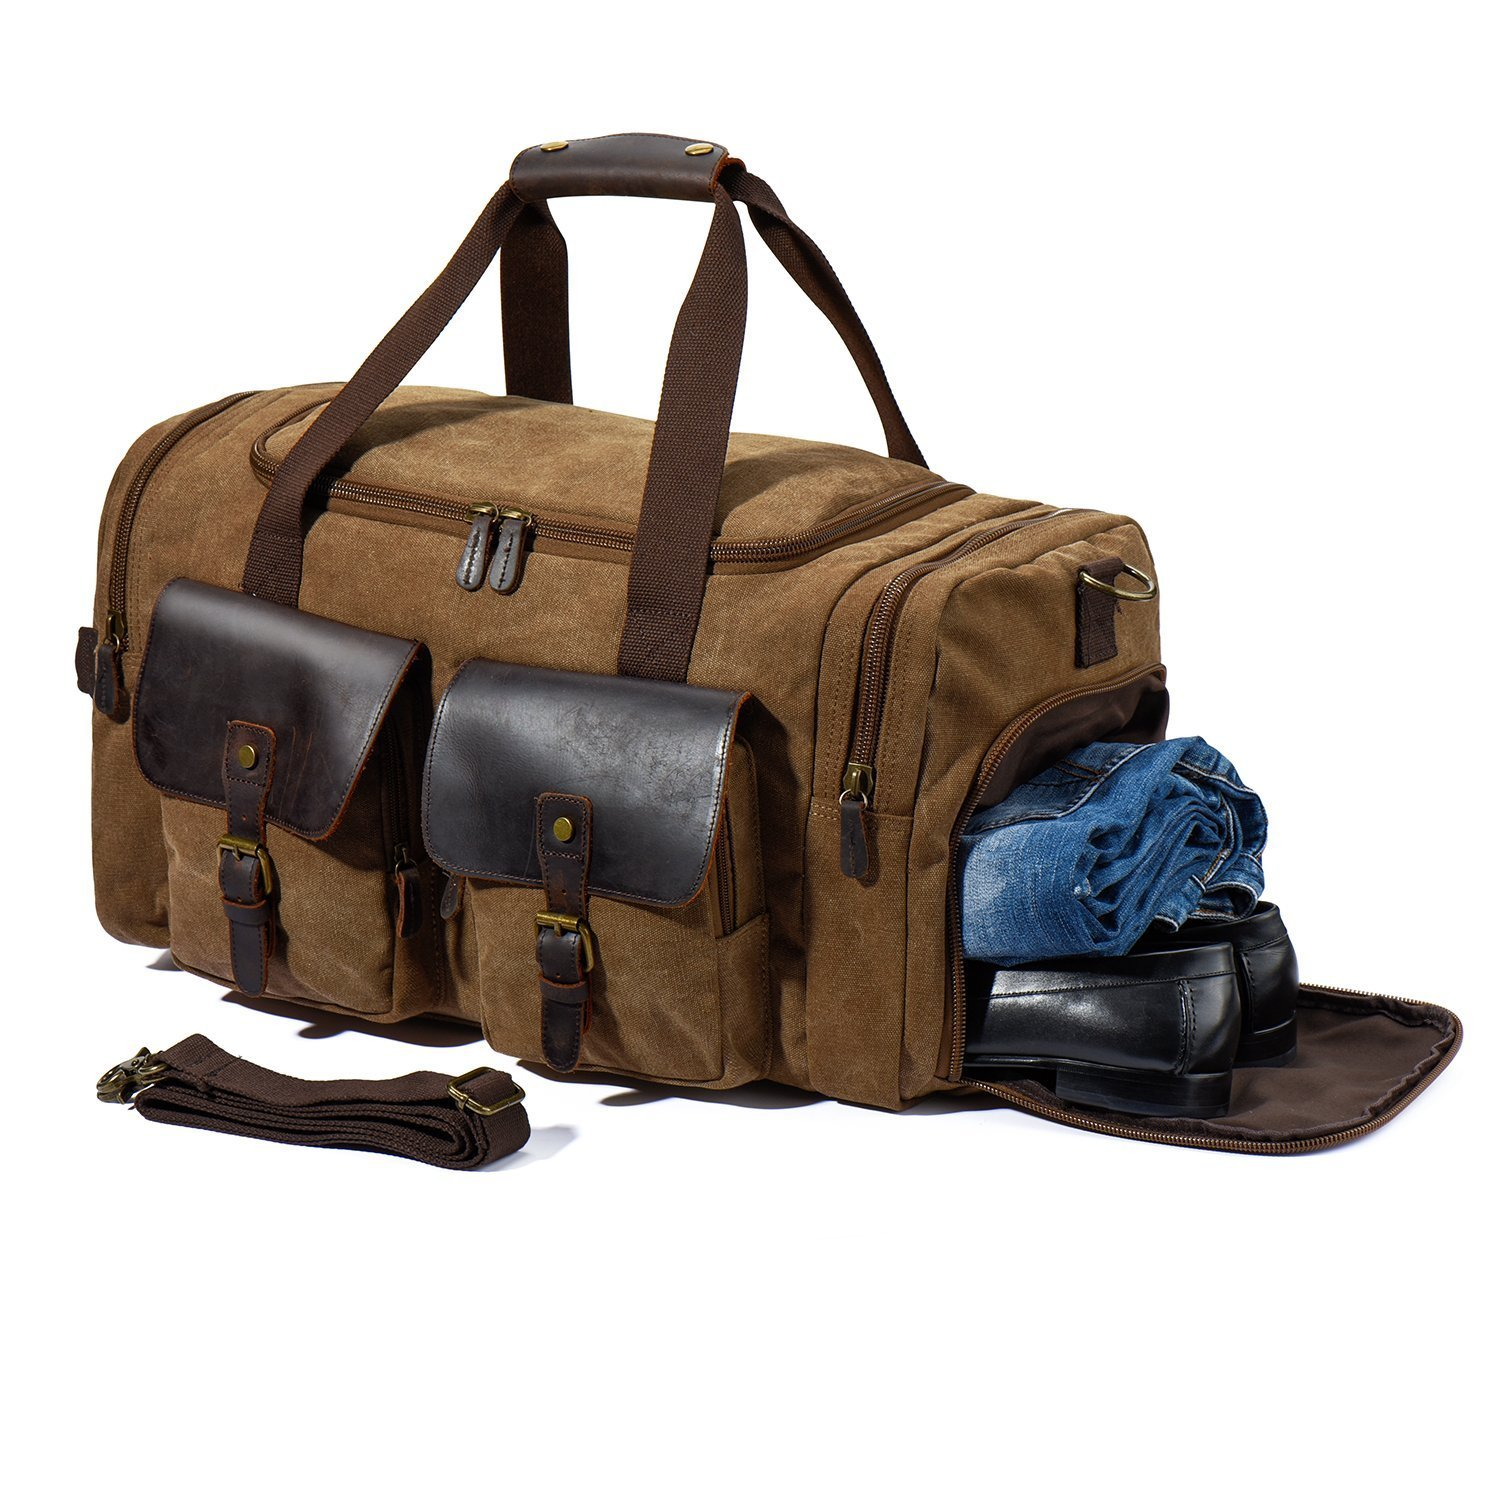 Travel Duffle Bag Leather Canvas Bag Weekend Overnight Bag Flight Bag Khaki